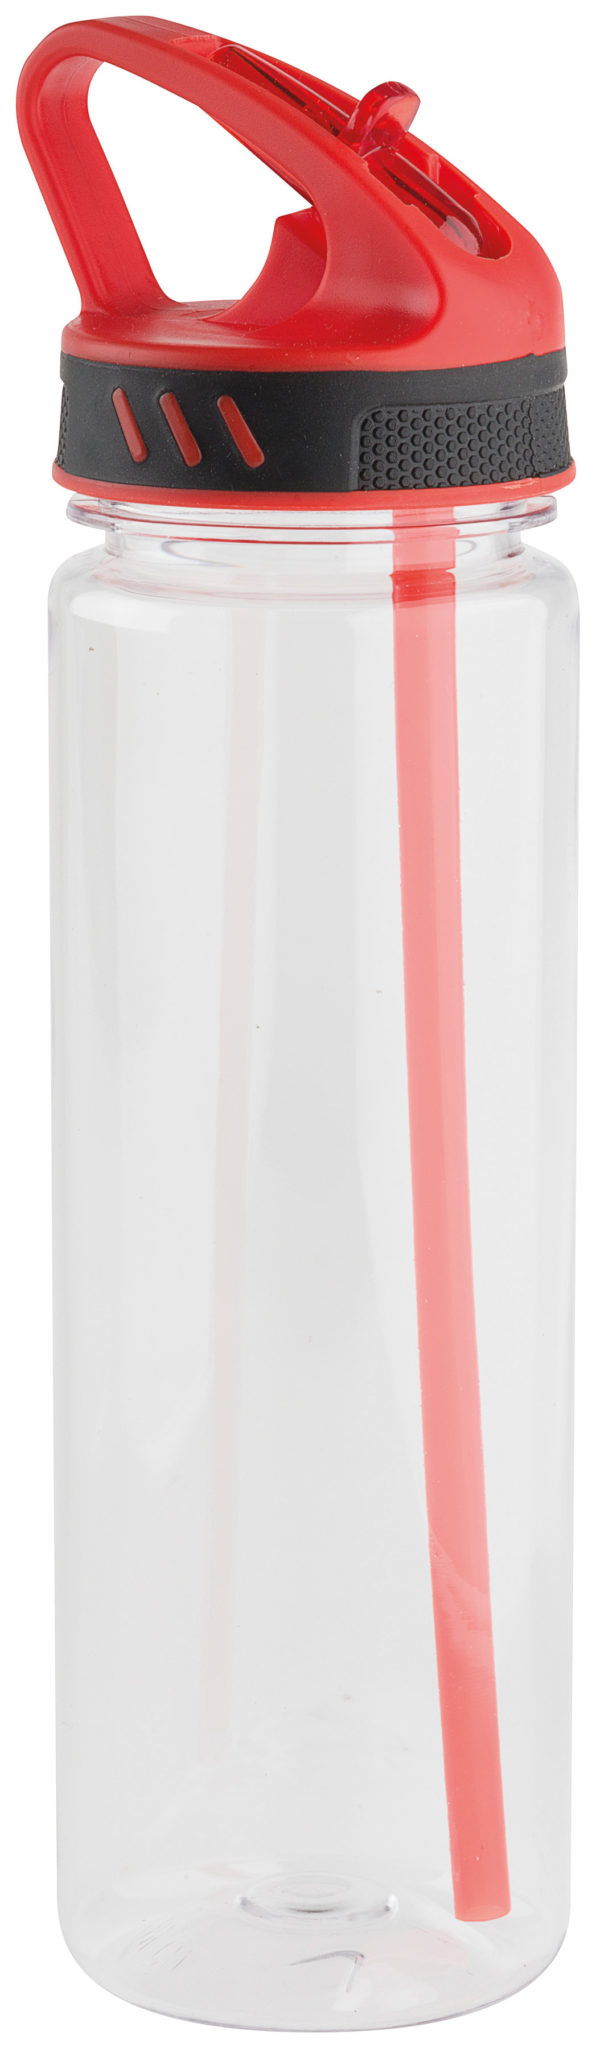 4067RD Ledge Sports Bottle Red scaled